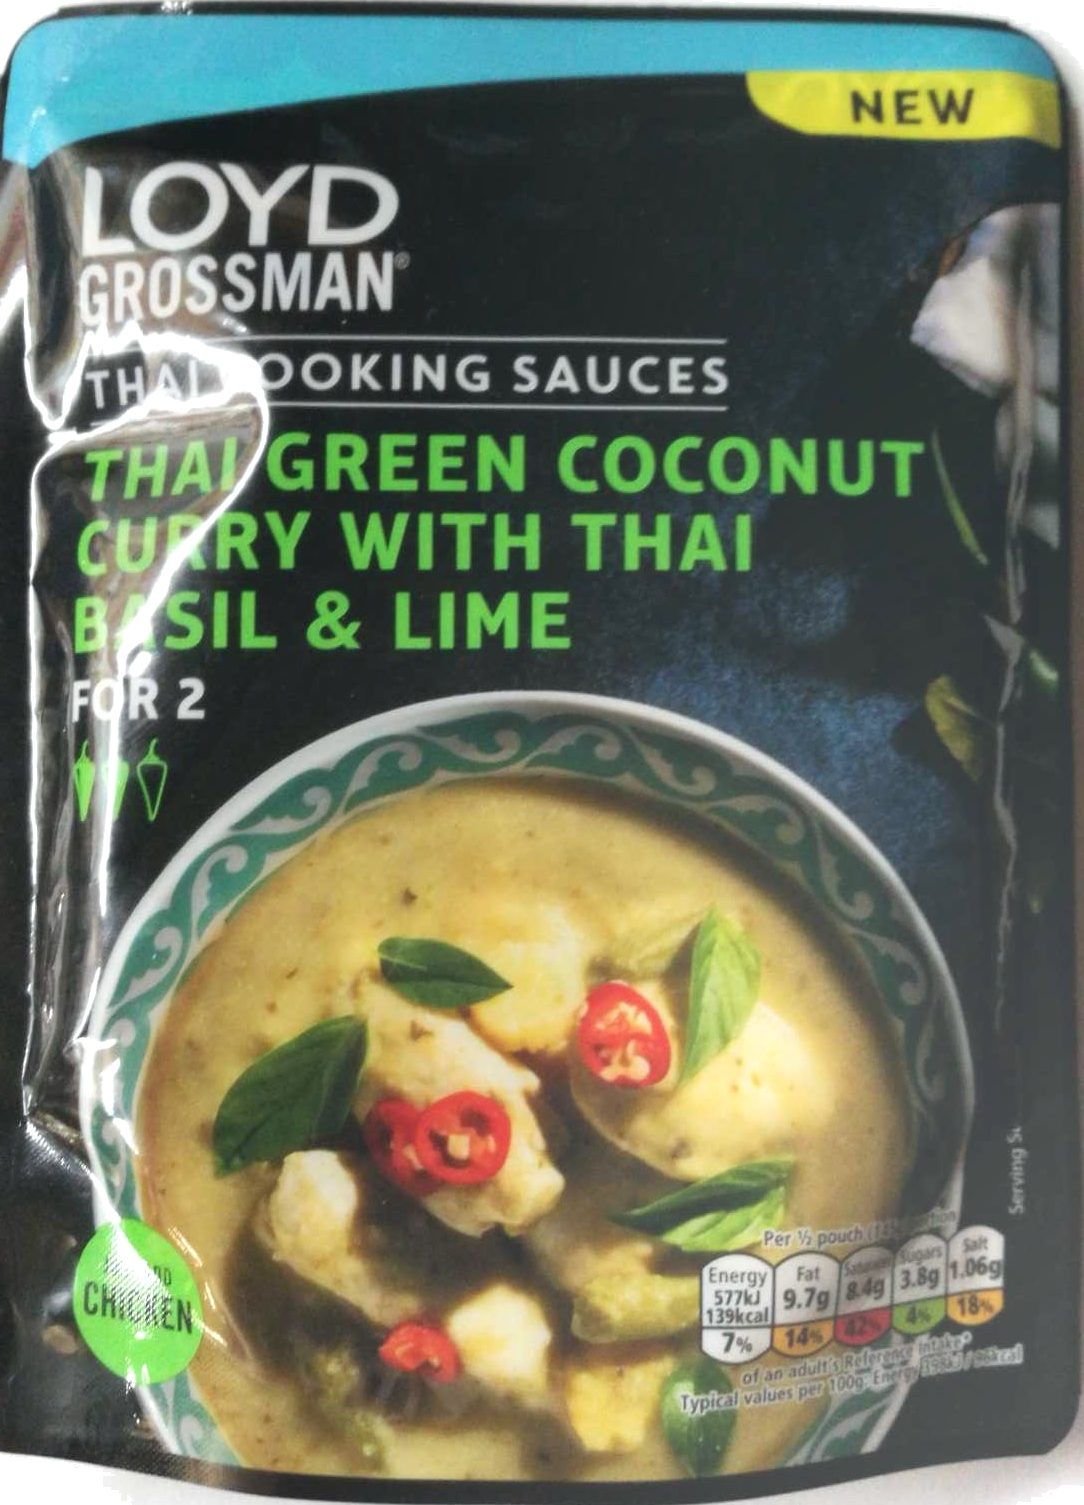 Thai Green Coconut Curry with Thai Basil and Lime - Product